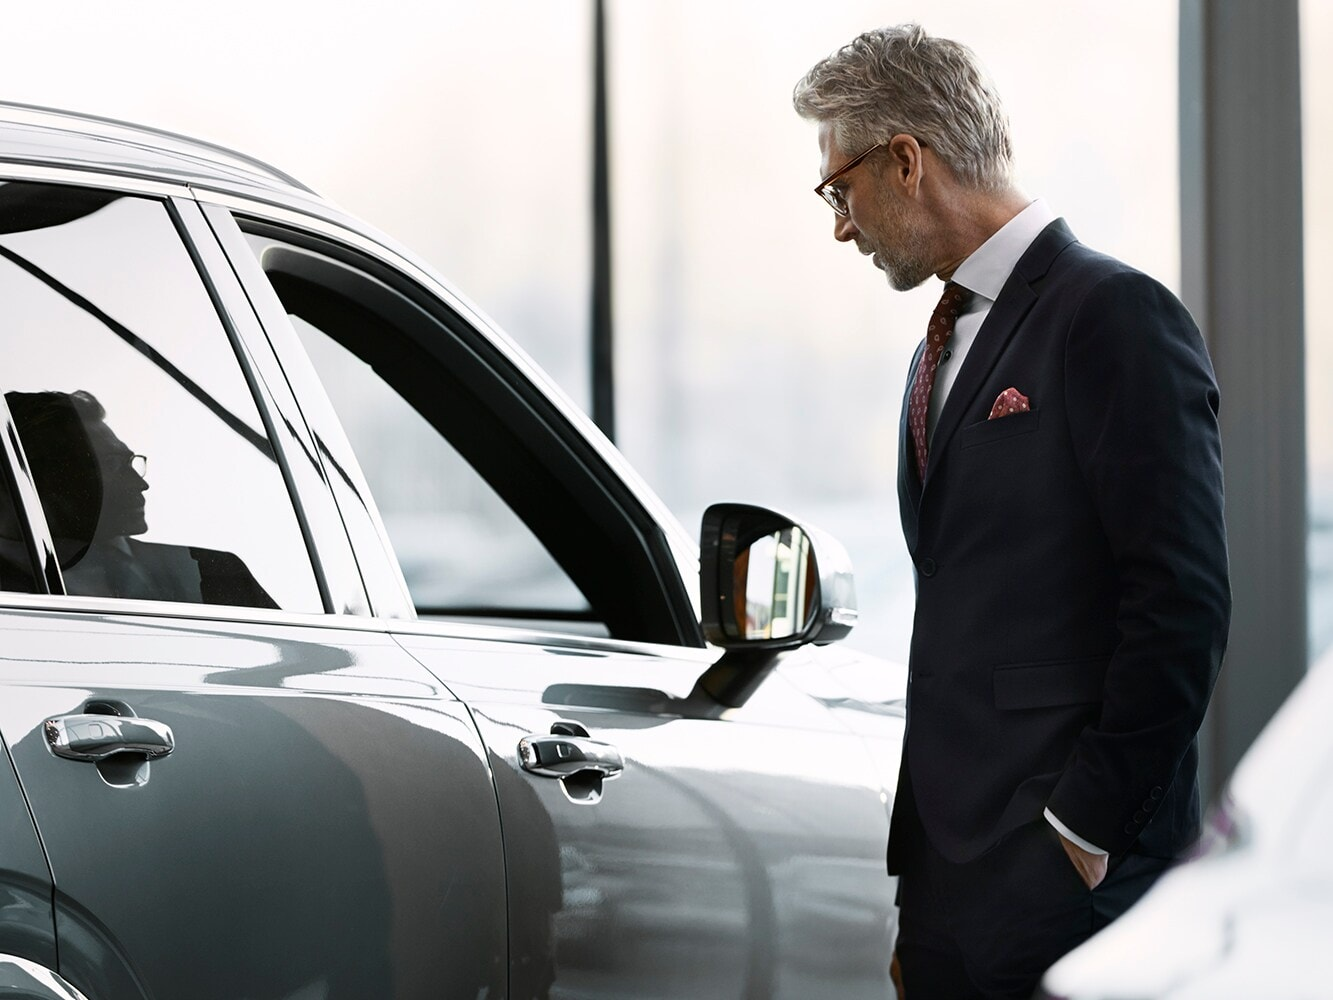 A Volvo S90 in a dealership being inspected by a customer